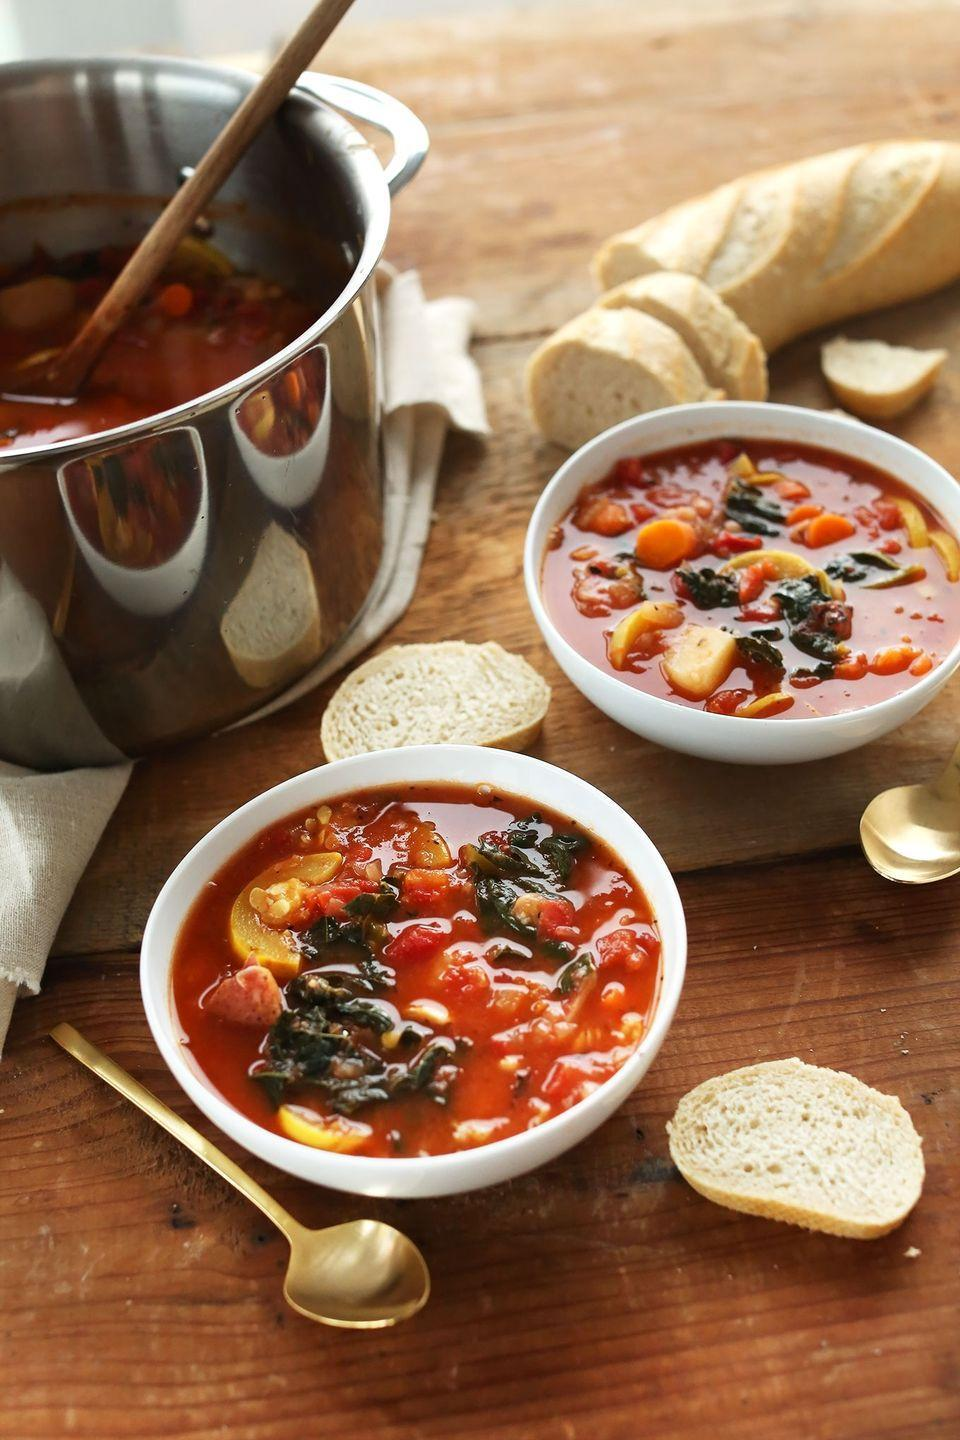 """<p>Thwart tradition and throw together a soup instead—the warm, cozy dish always goes over well on a crisp fall day.</p><p><strong>Get the recipe at <a href=""""https://minimalistbaker.com/tomato-and-vegetable-white-bean-soup/"""" rel=""""nofollow noopener"""" target=""""_blank"""" data-ylk=""""slk:Minimalist Baker"""" class=""""link rapid-noclick-resp"""">Minimalist Baker</a>.</strong> </p>"""